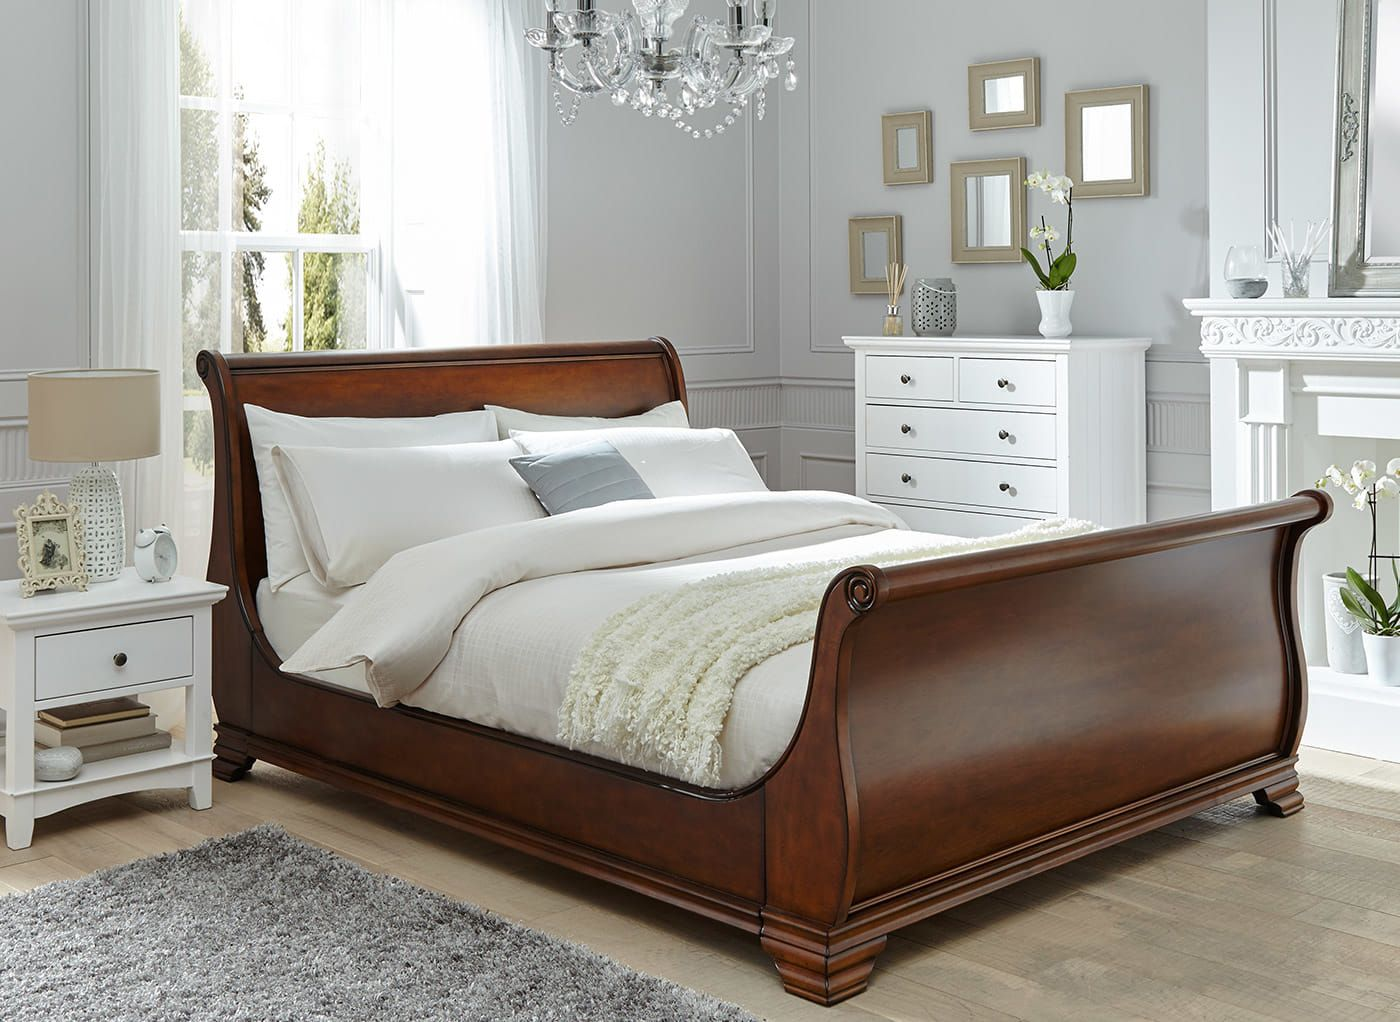 Orleans Walnut Wooden Bed Frame Wooden bed frames and